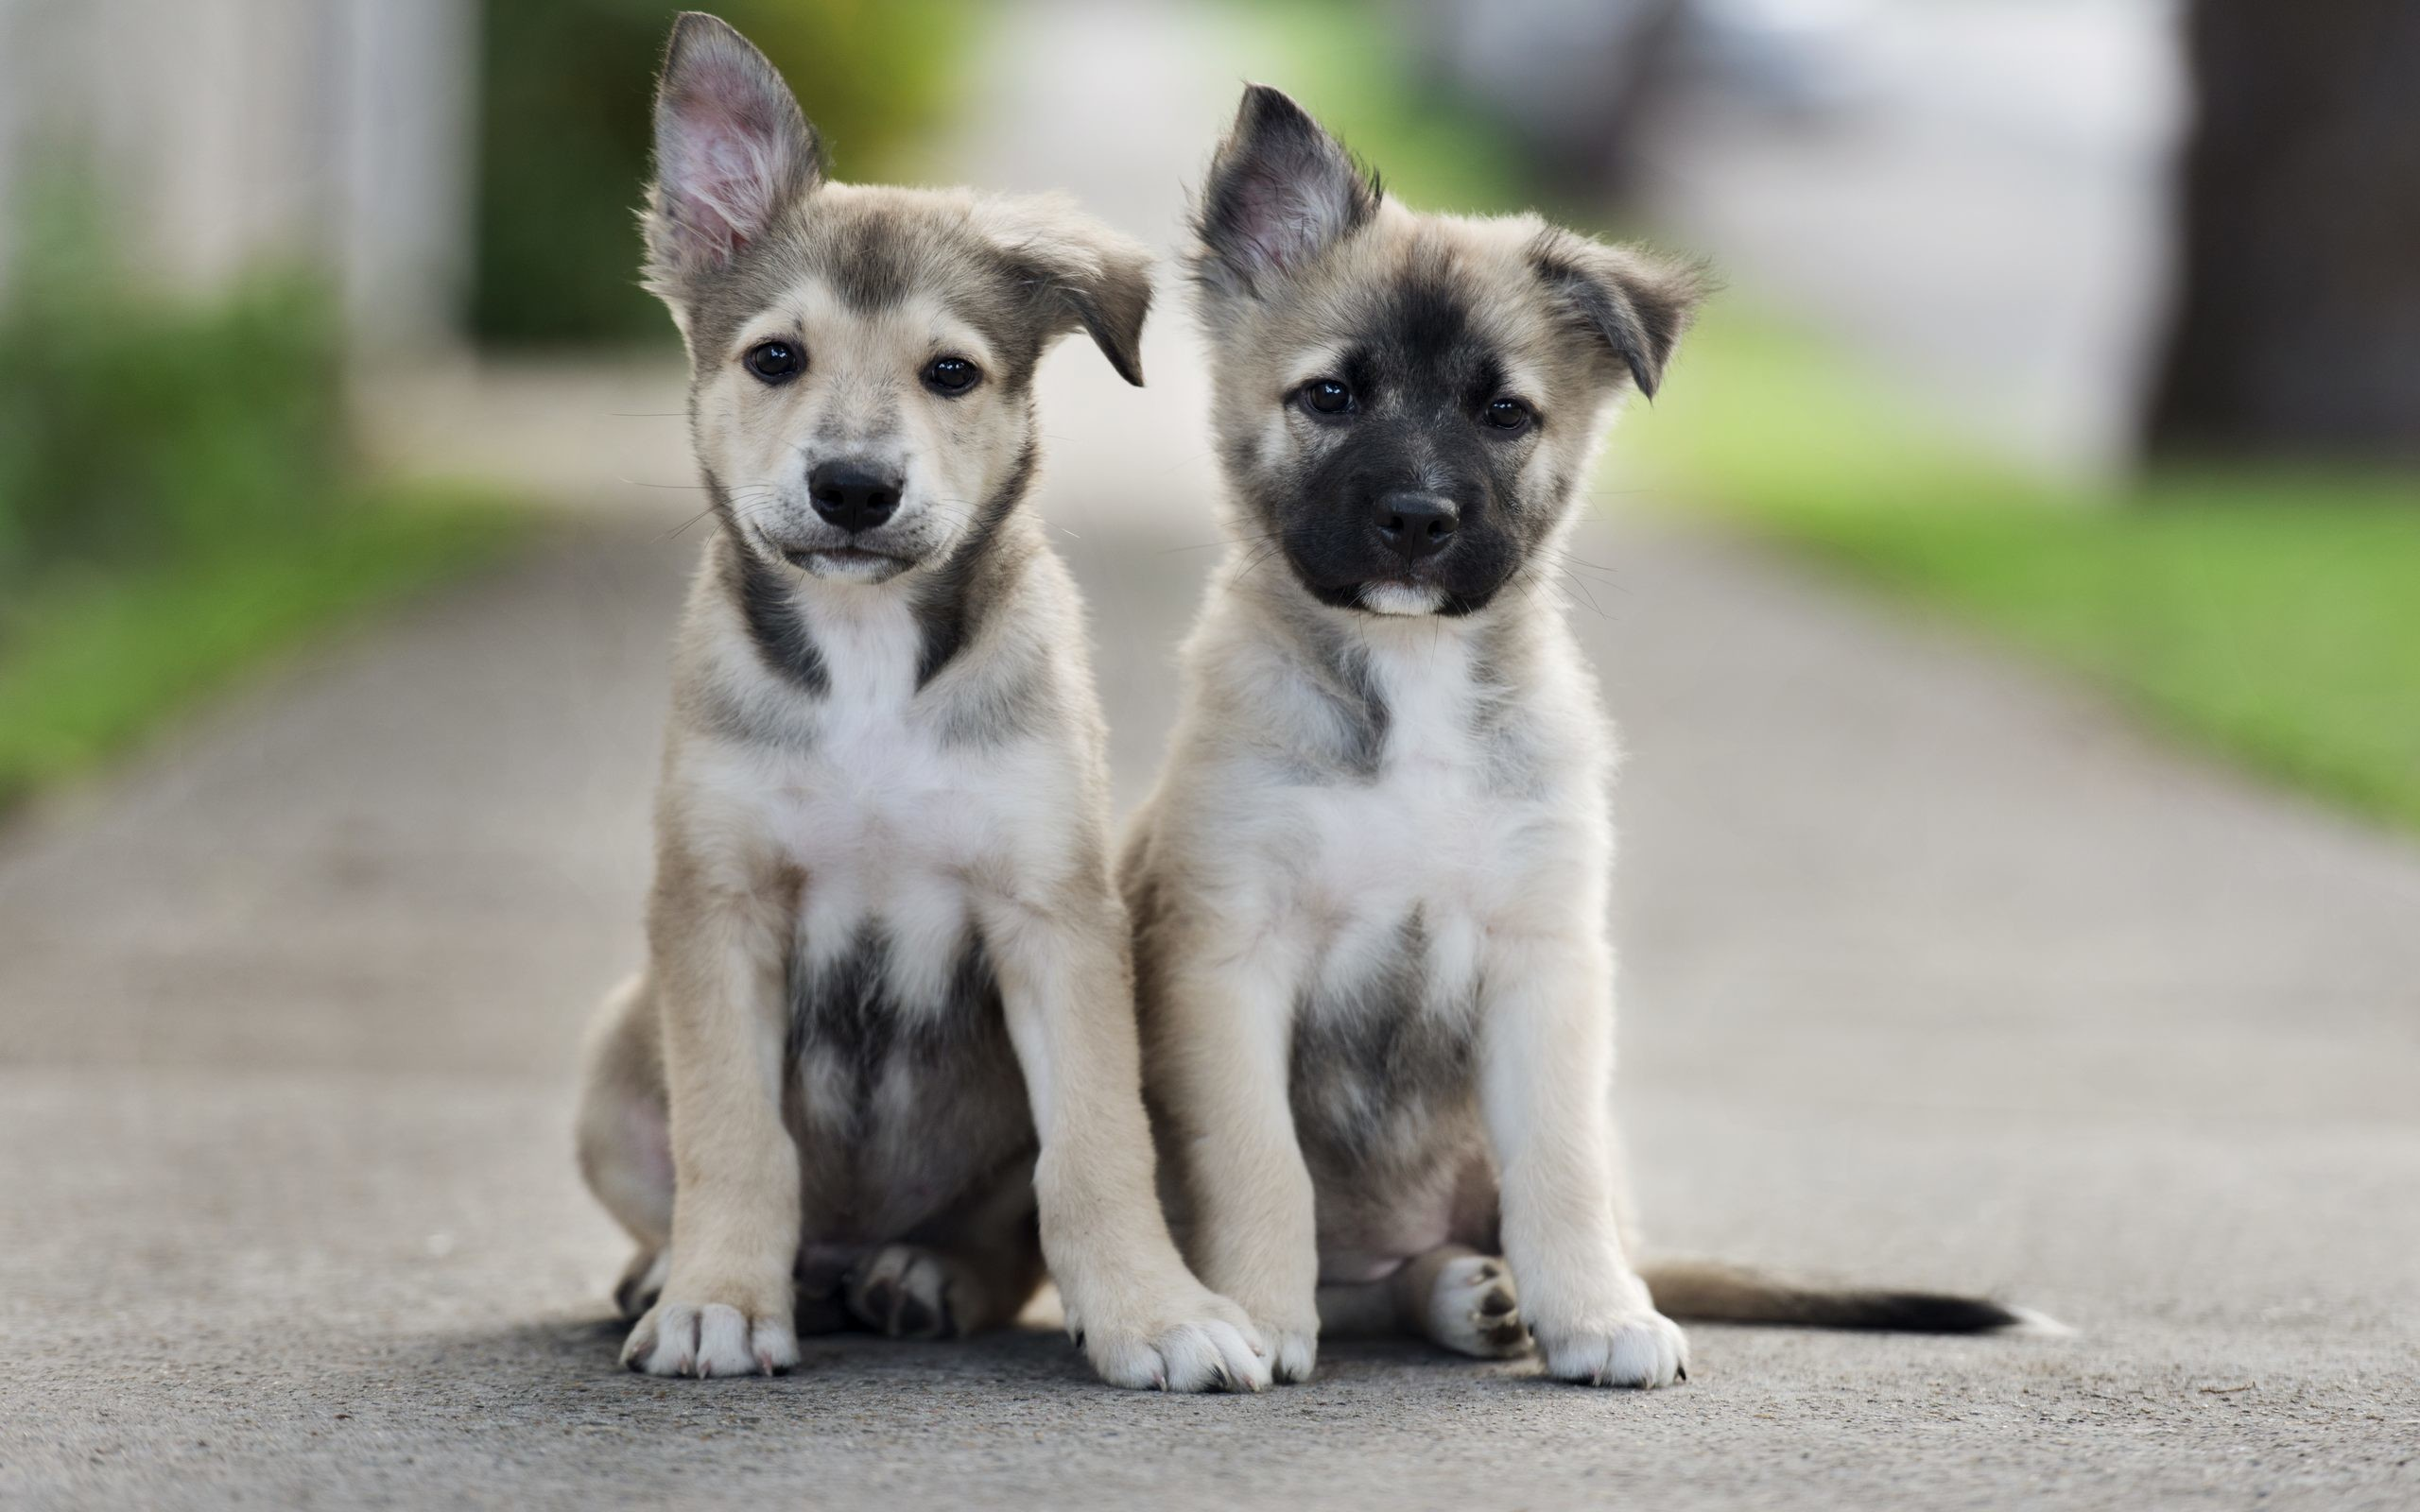 Cute Puppies Wallpapers Phone For Sale Puppy Tumblr Dog Baby .